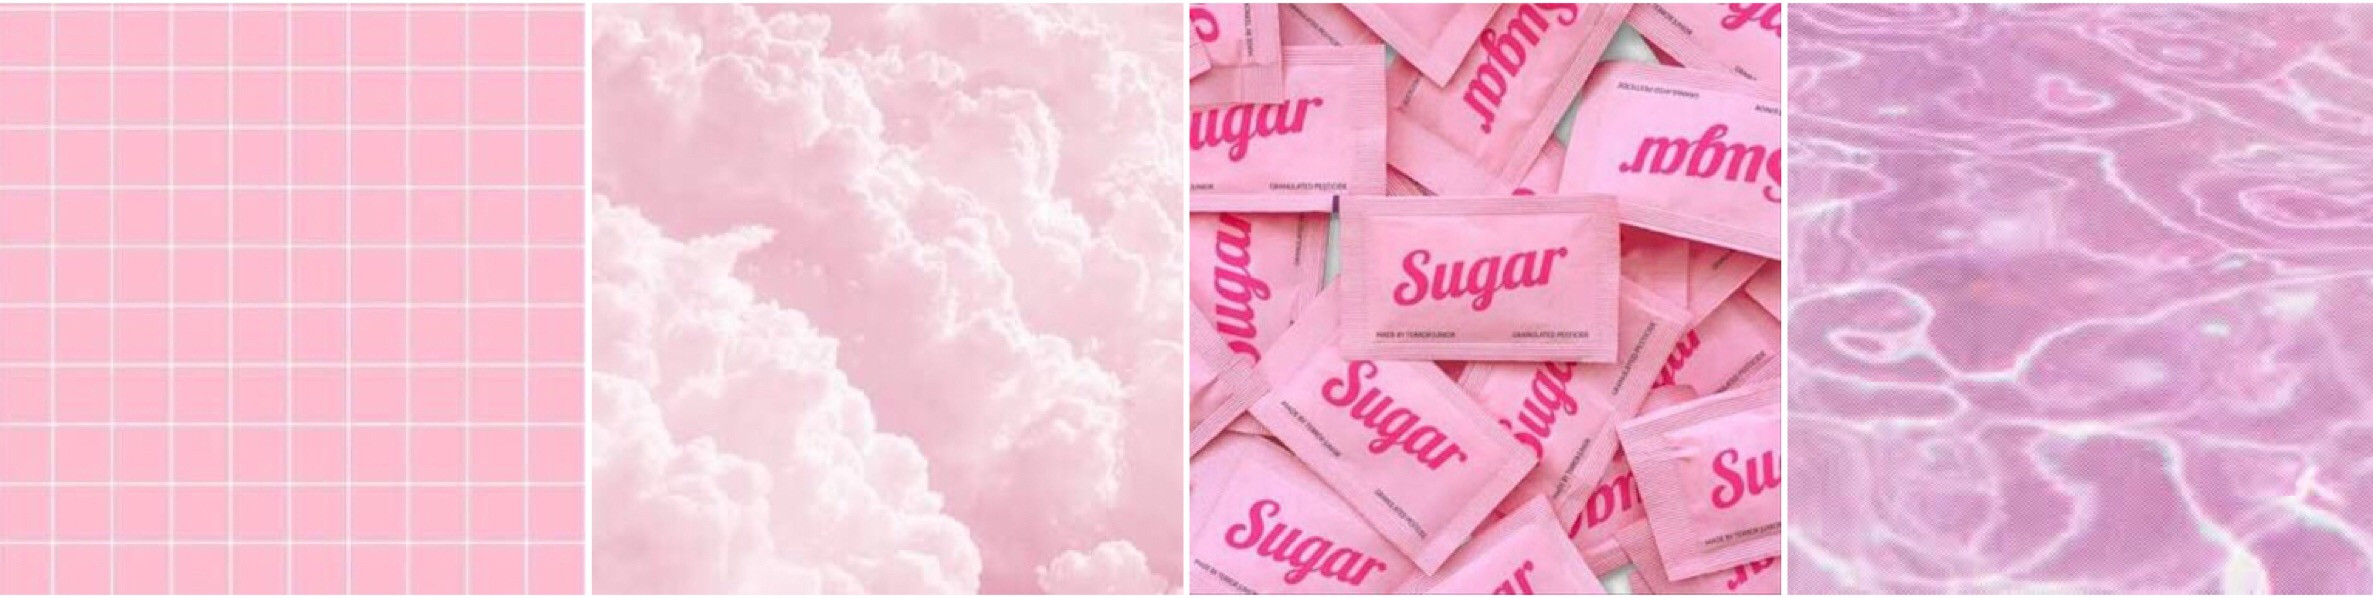 #pink #pinkaesthetic #cool #sugar #clouds #water #grid #collage